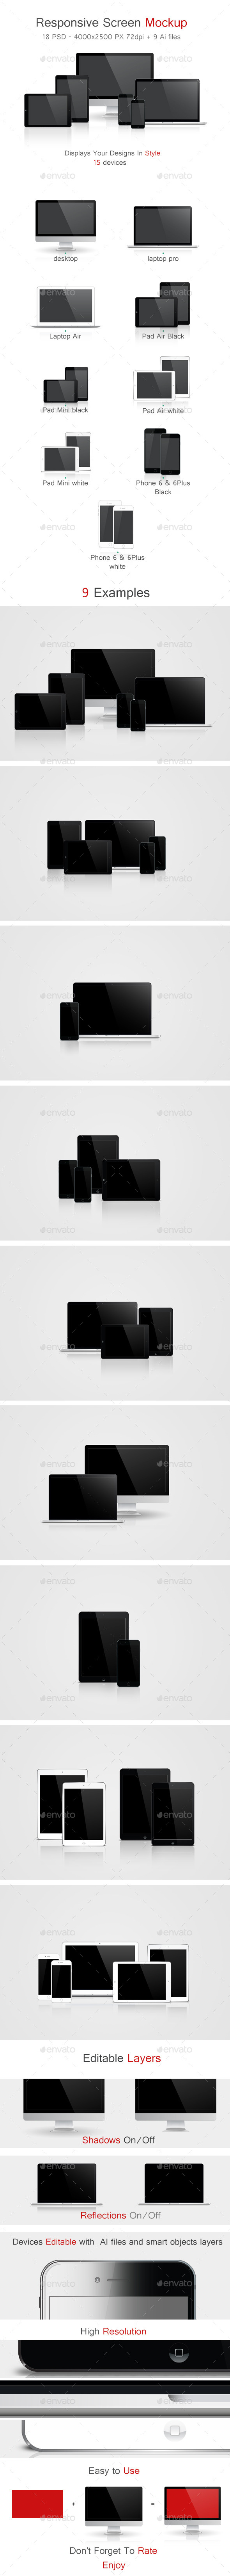 GraphicRiver Responsive Screen Mockup 9180177